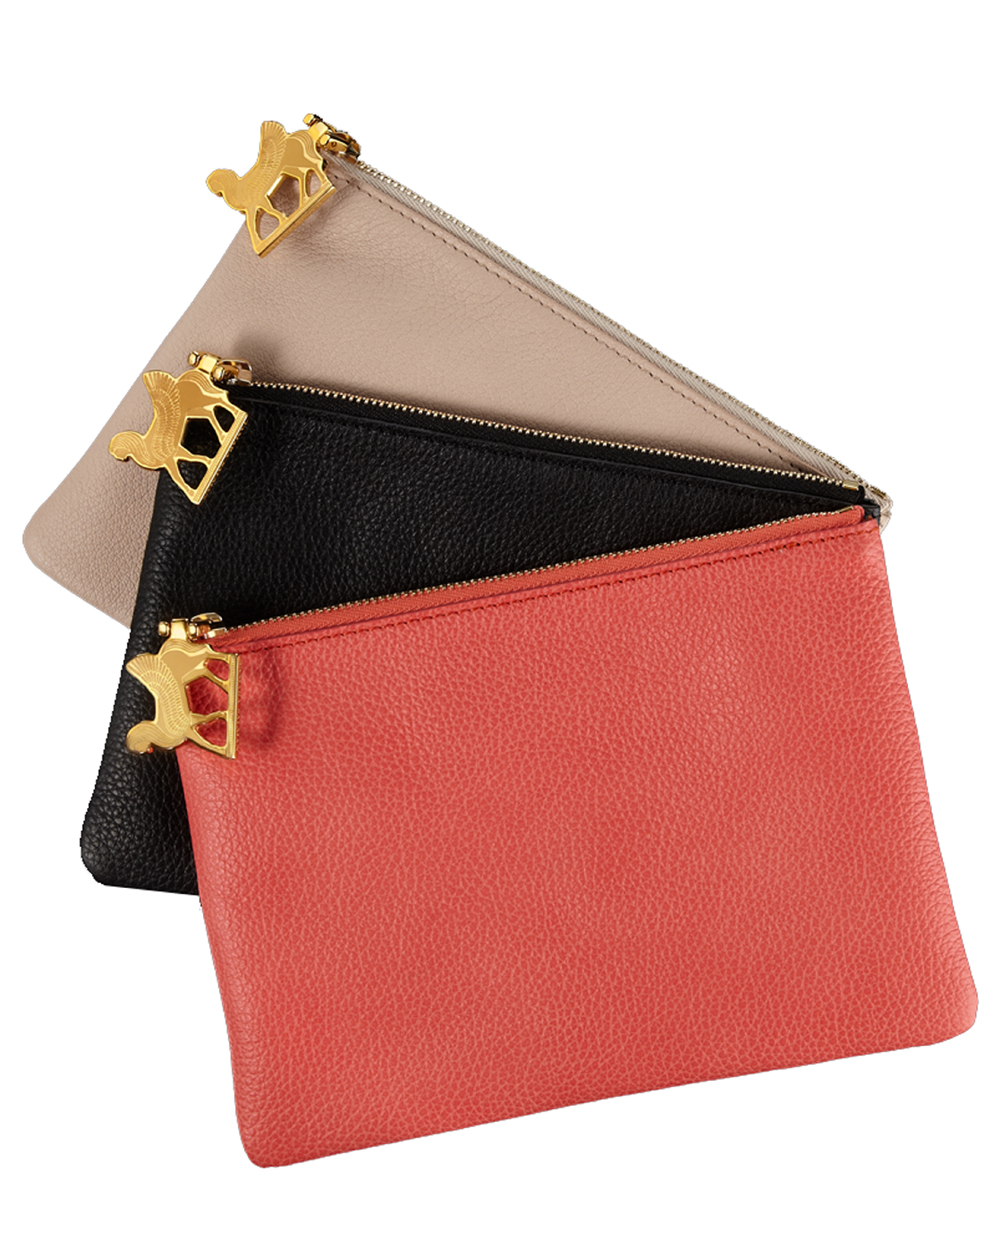 Purses with logo zip pull